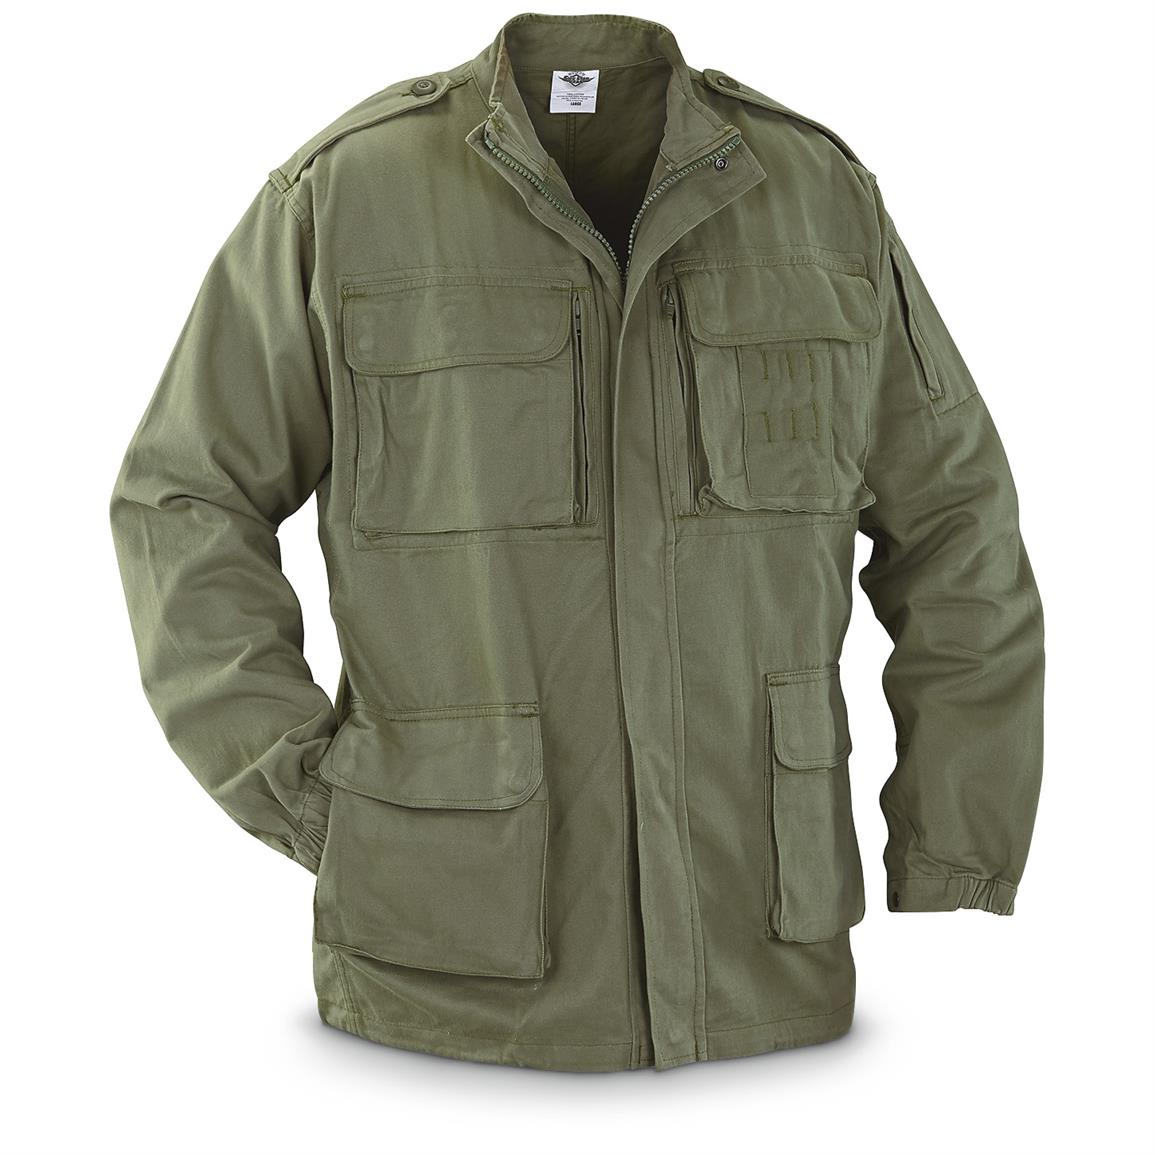 5ive Star Gear Conceal Carry Field Jacket